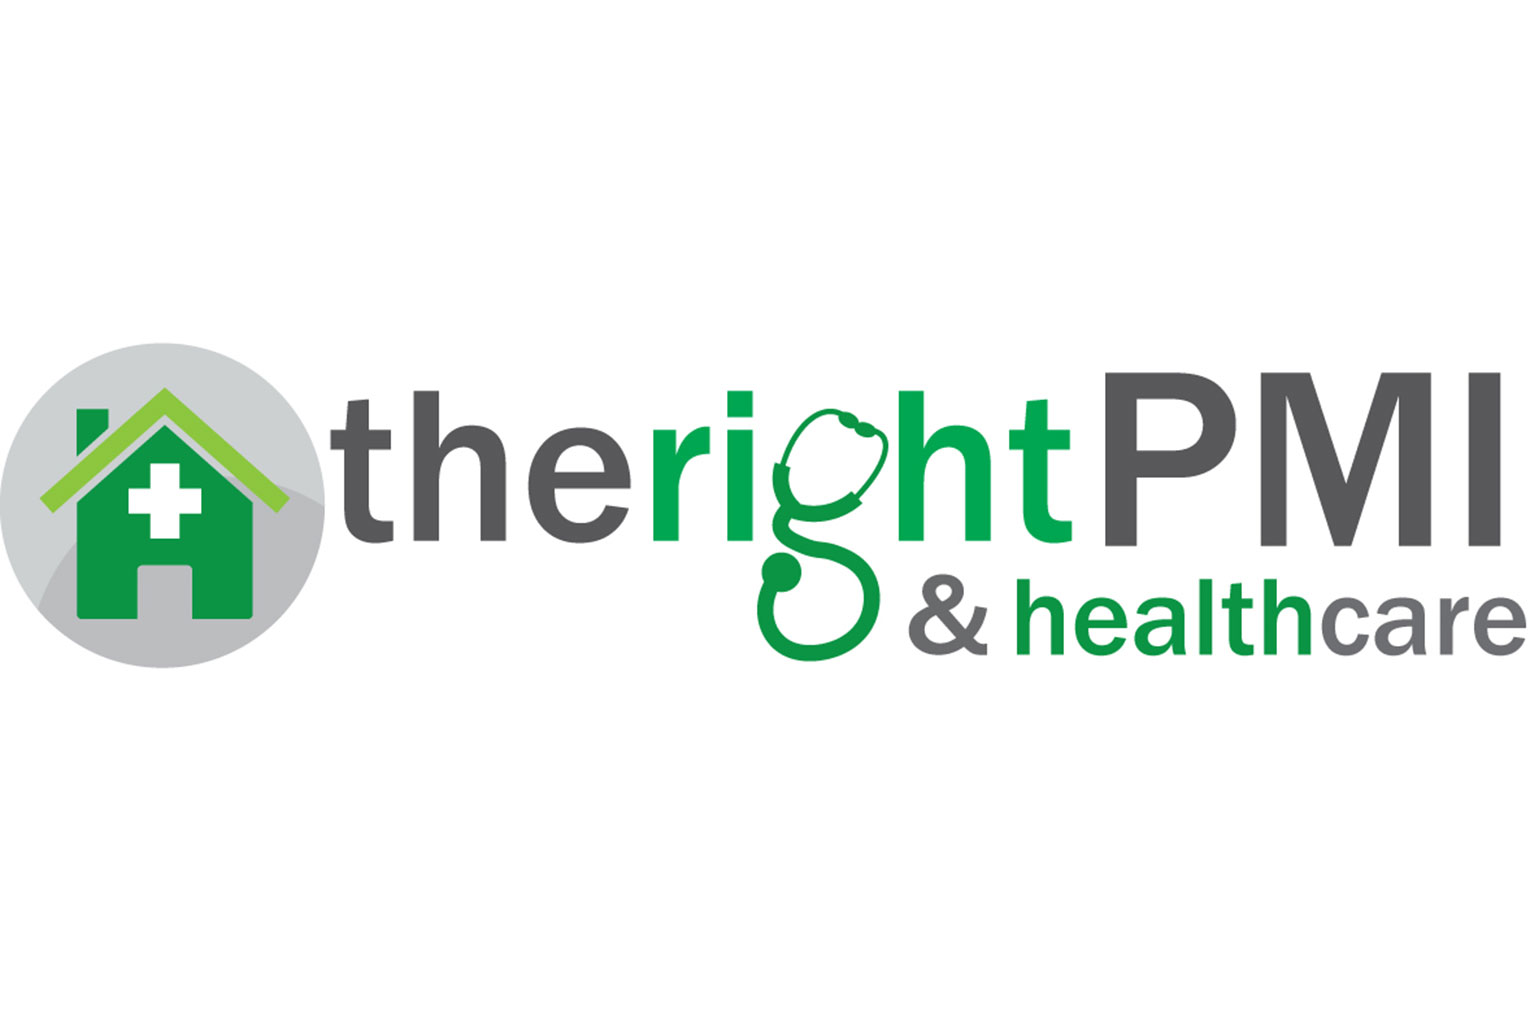 The Right Mortgage & Protection Network unveils PMI division